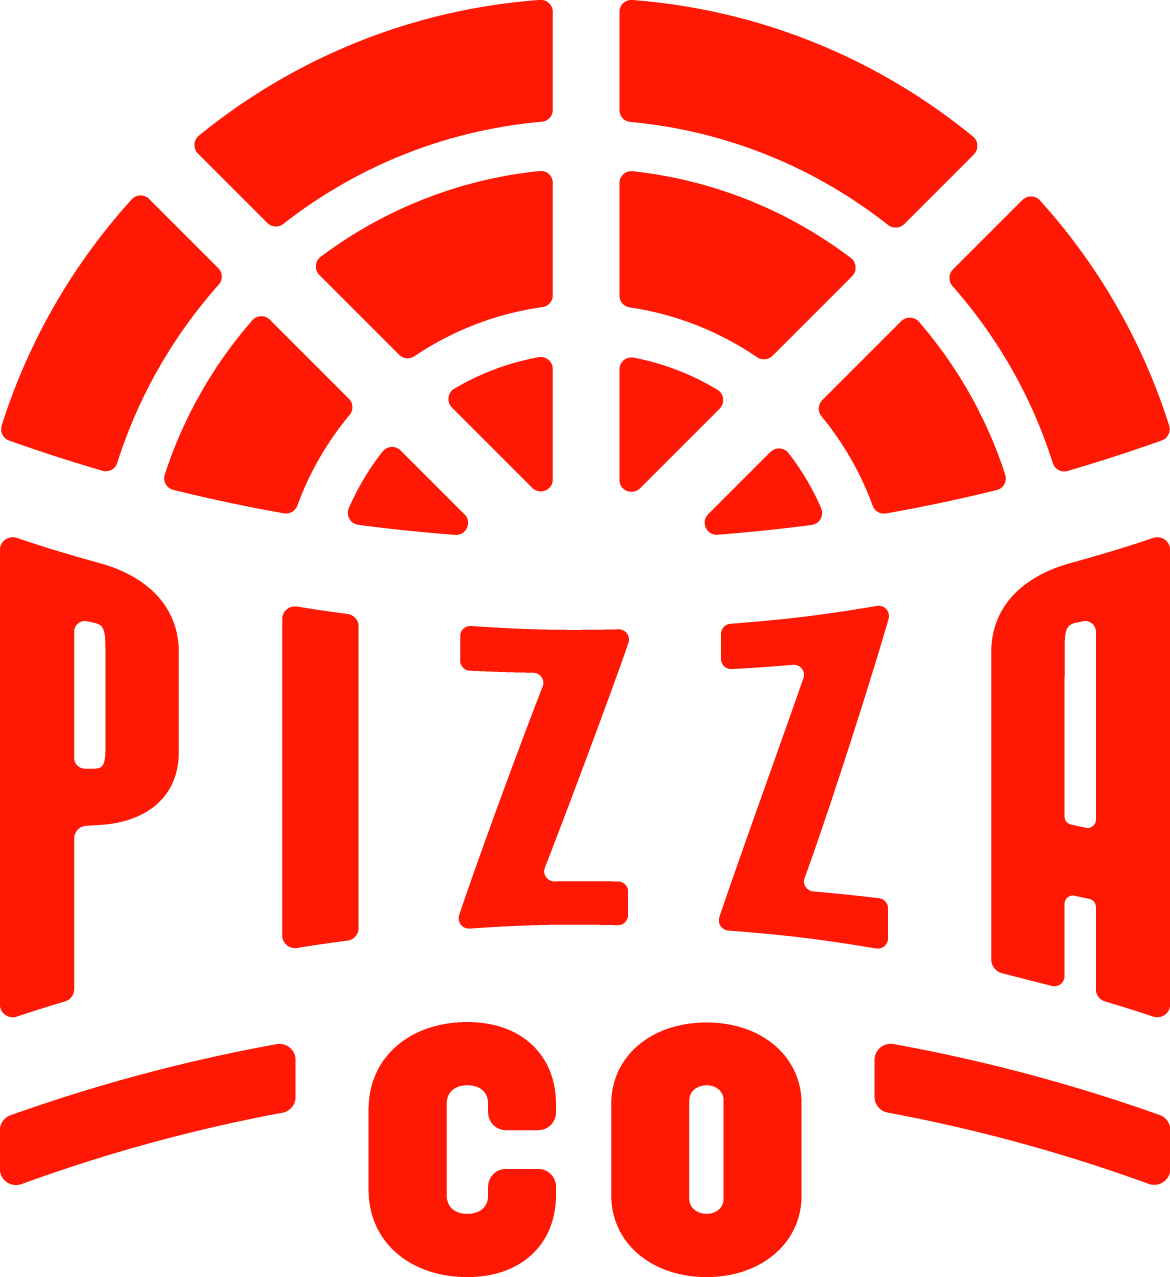 PIZZA CO.